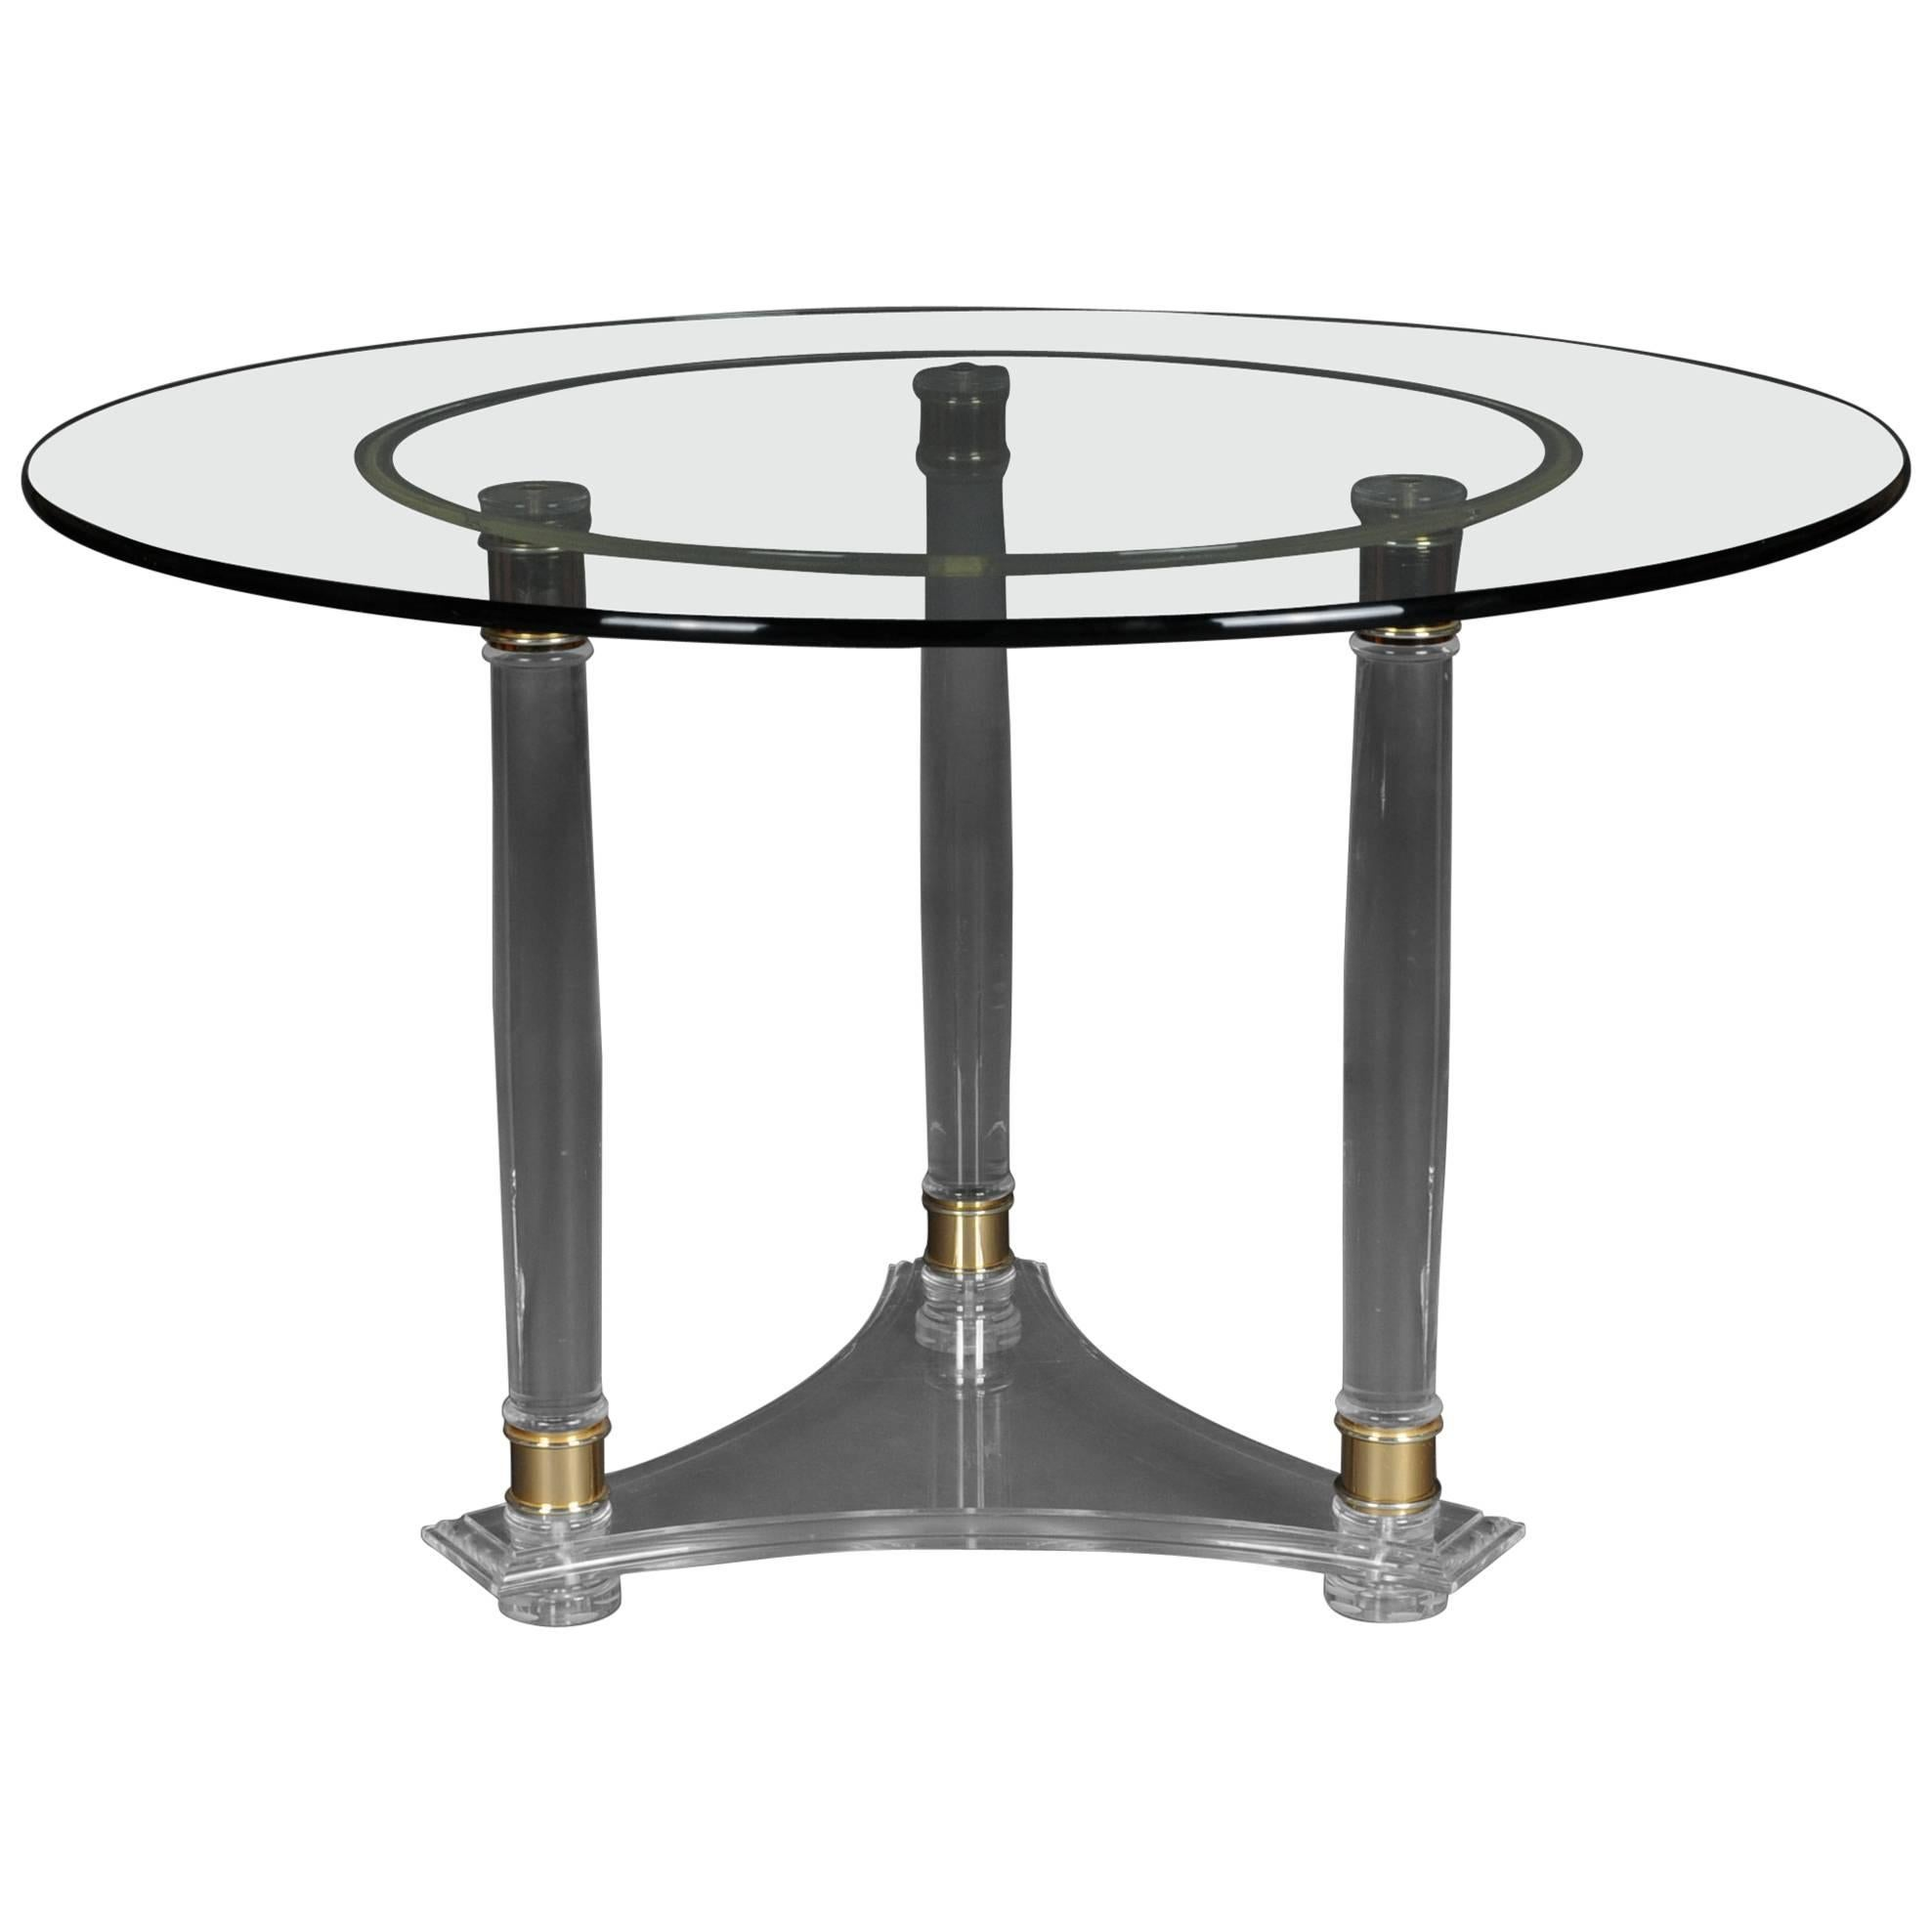 Delicieux Large, Round Designer Acrylic Table With Brass For Sale